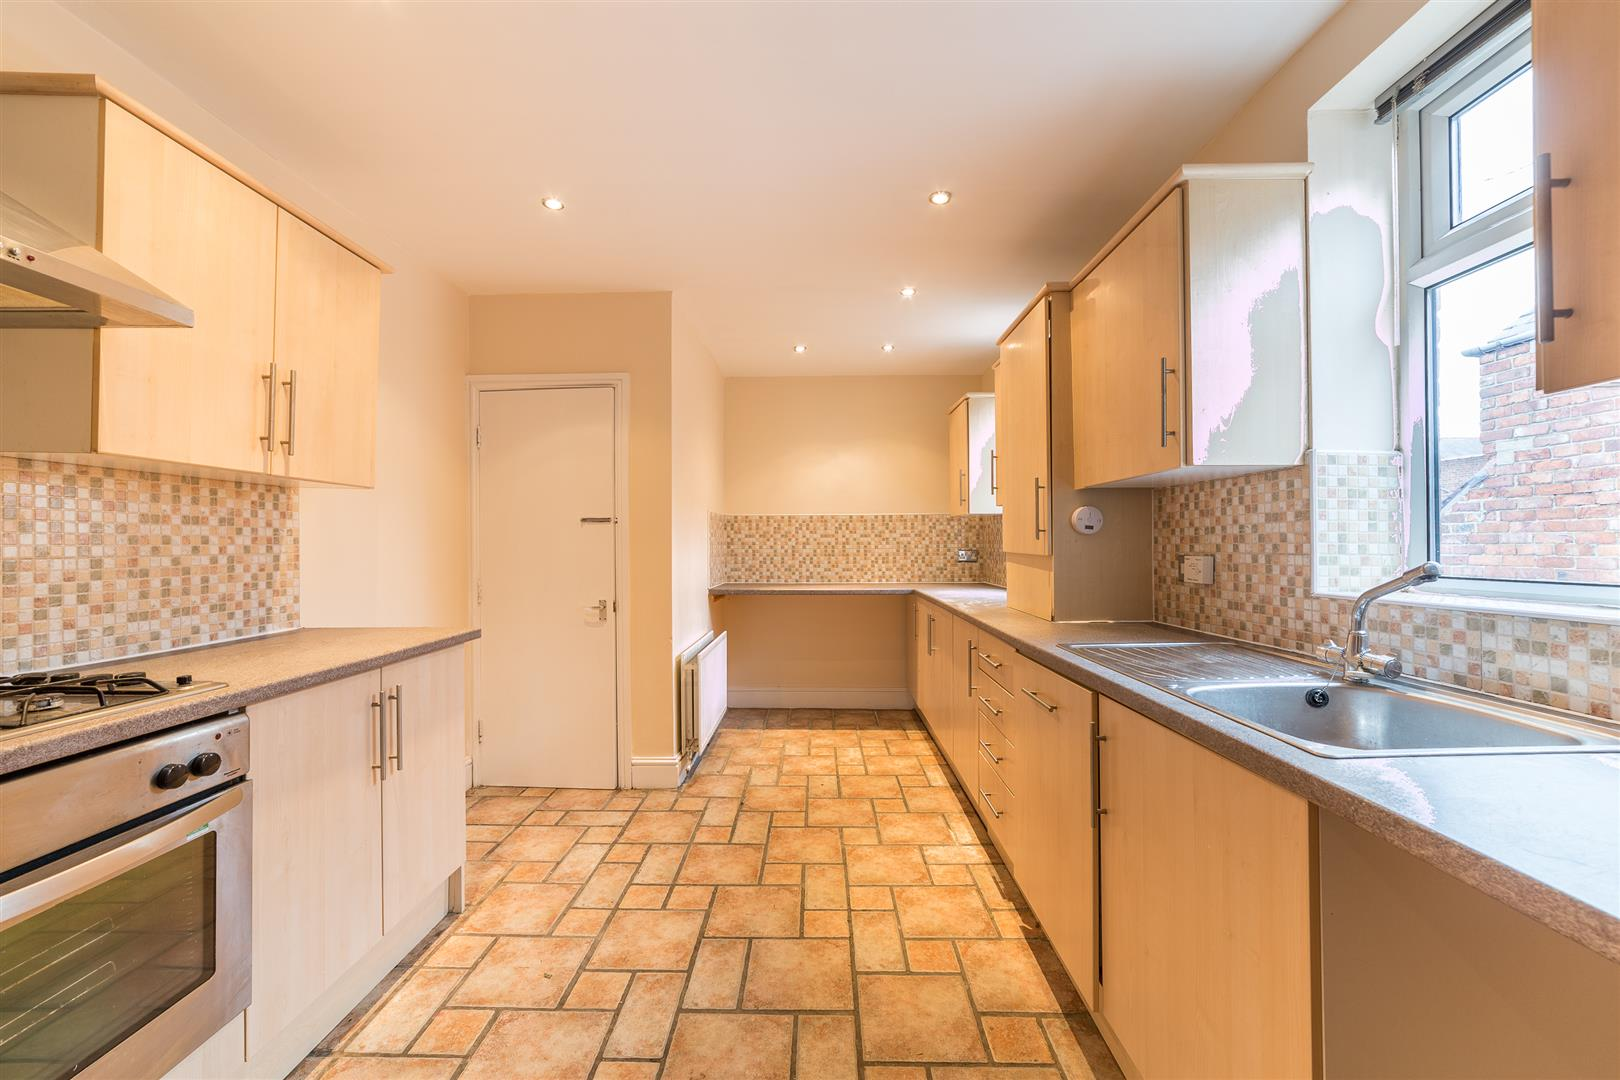 3 bed maisonette to rent in Newcastle Upon Tyne, NE6 5SU - Property Image 1